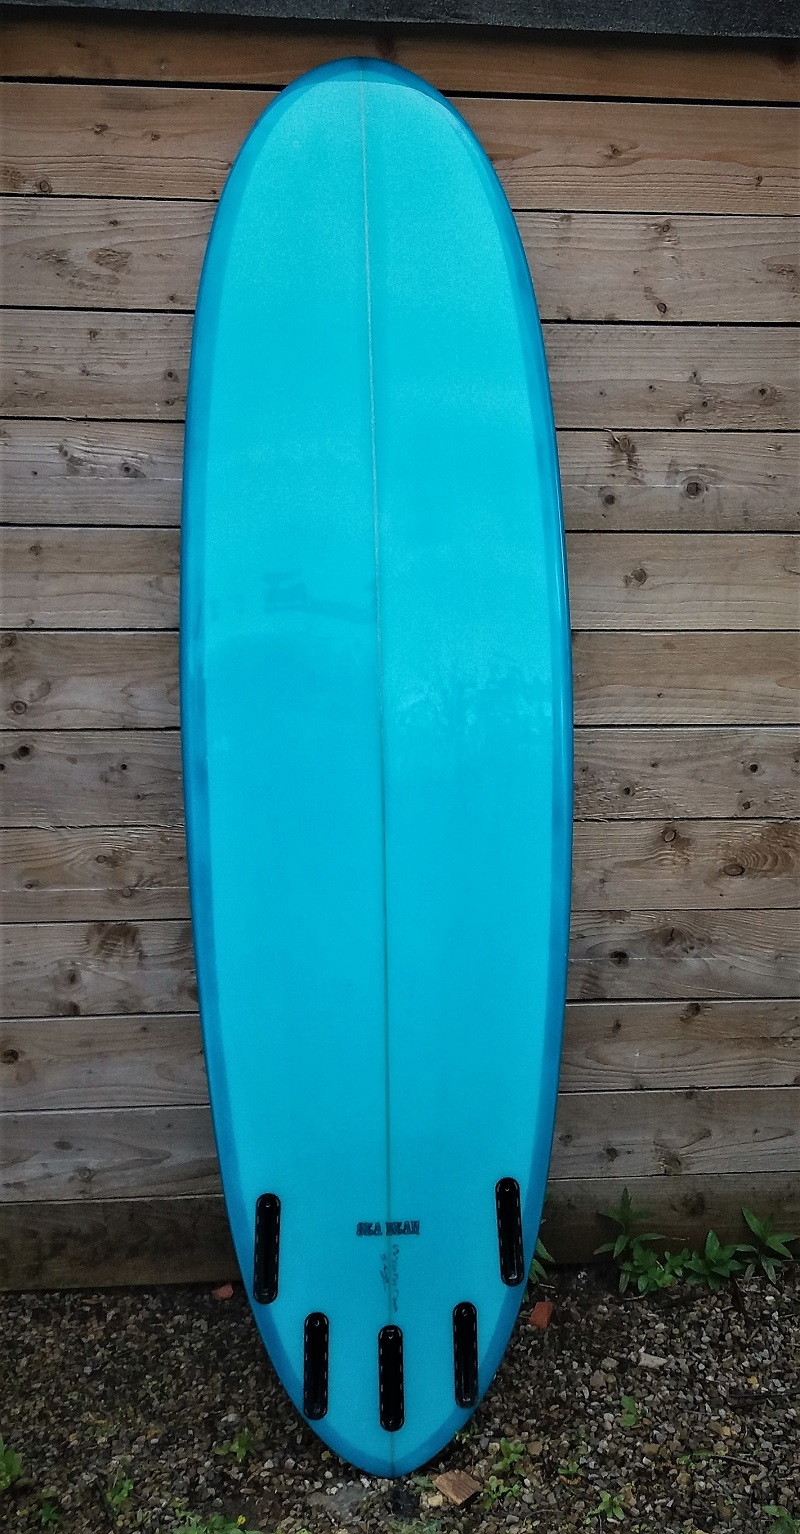 Sea Bean Funboard Surfboard withj future fins setup